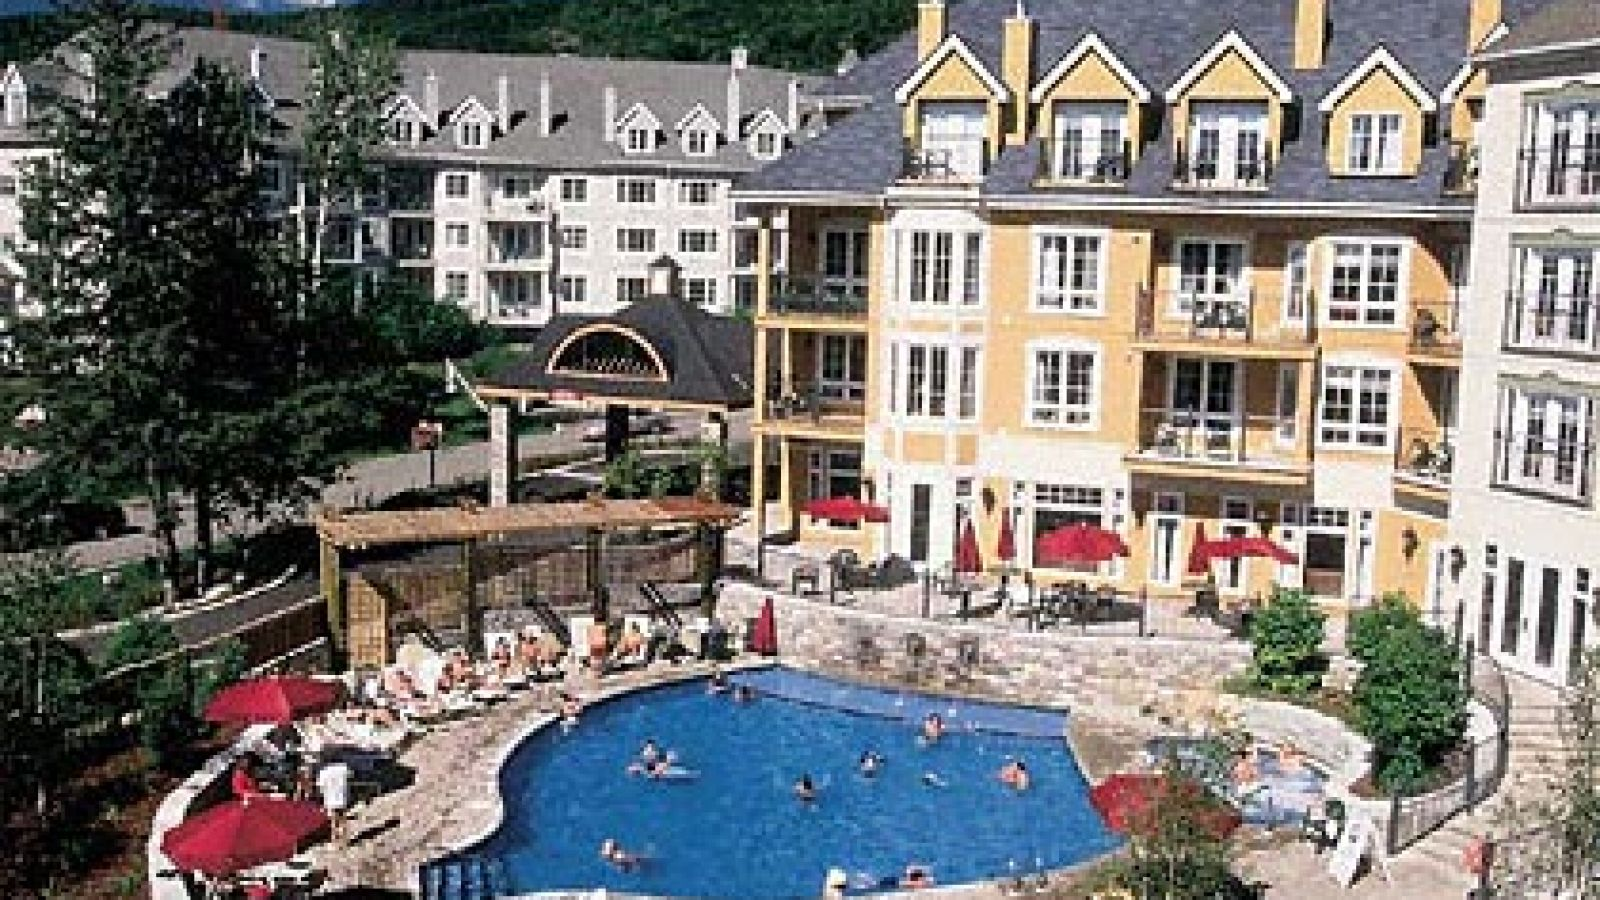 Les Suites Tremblant - Mont-Tremblant, Quebec golf packages